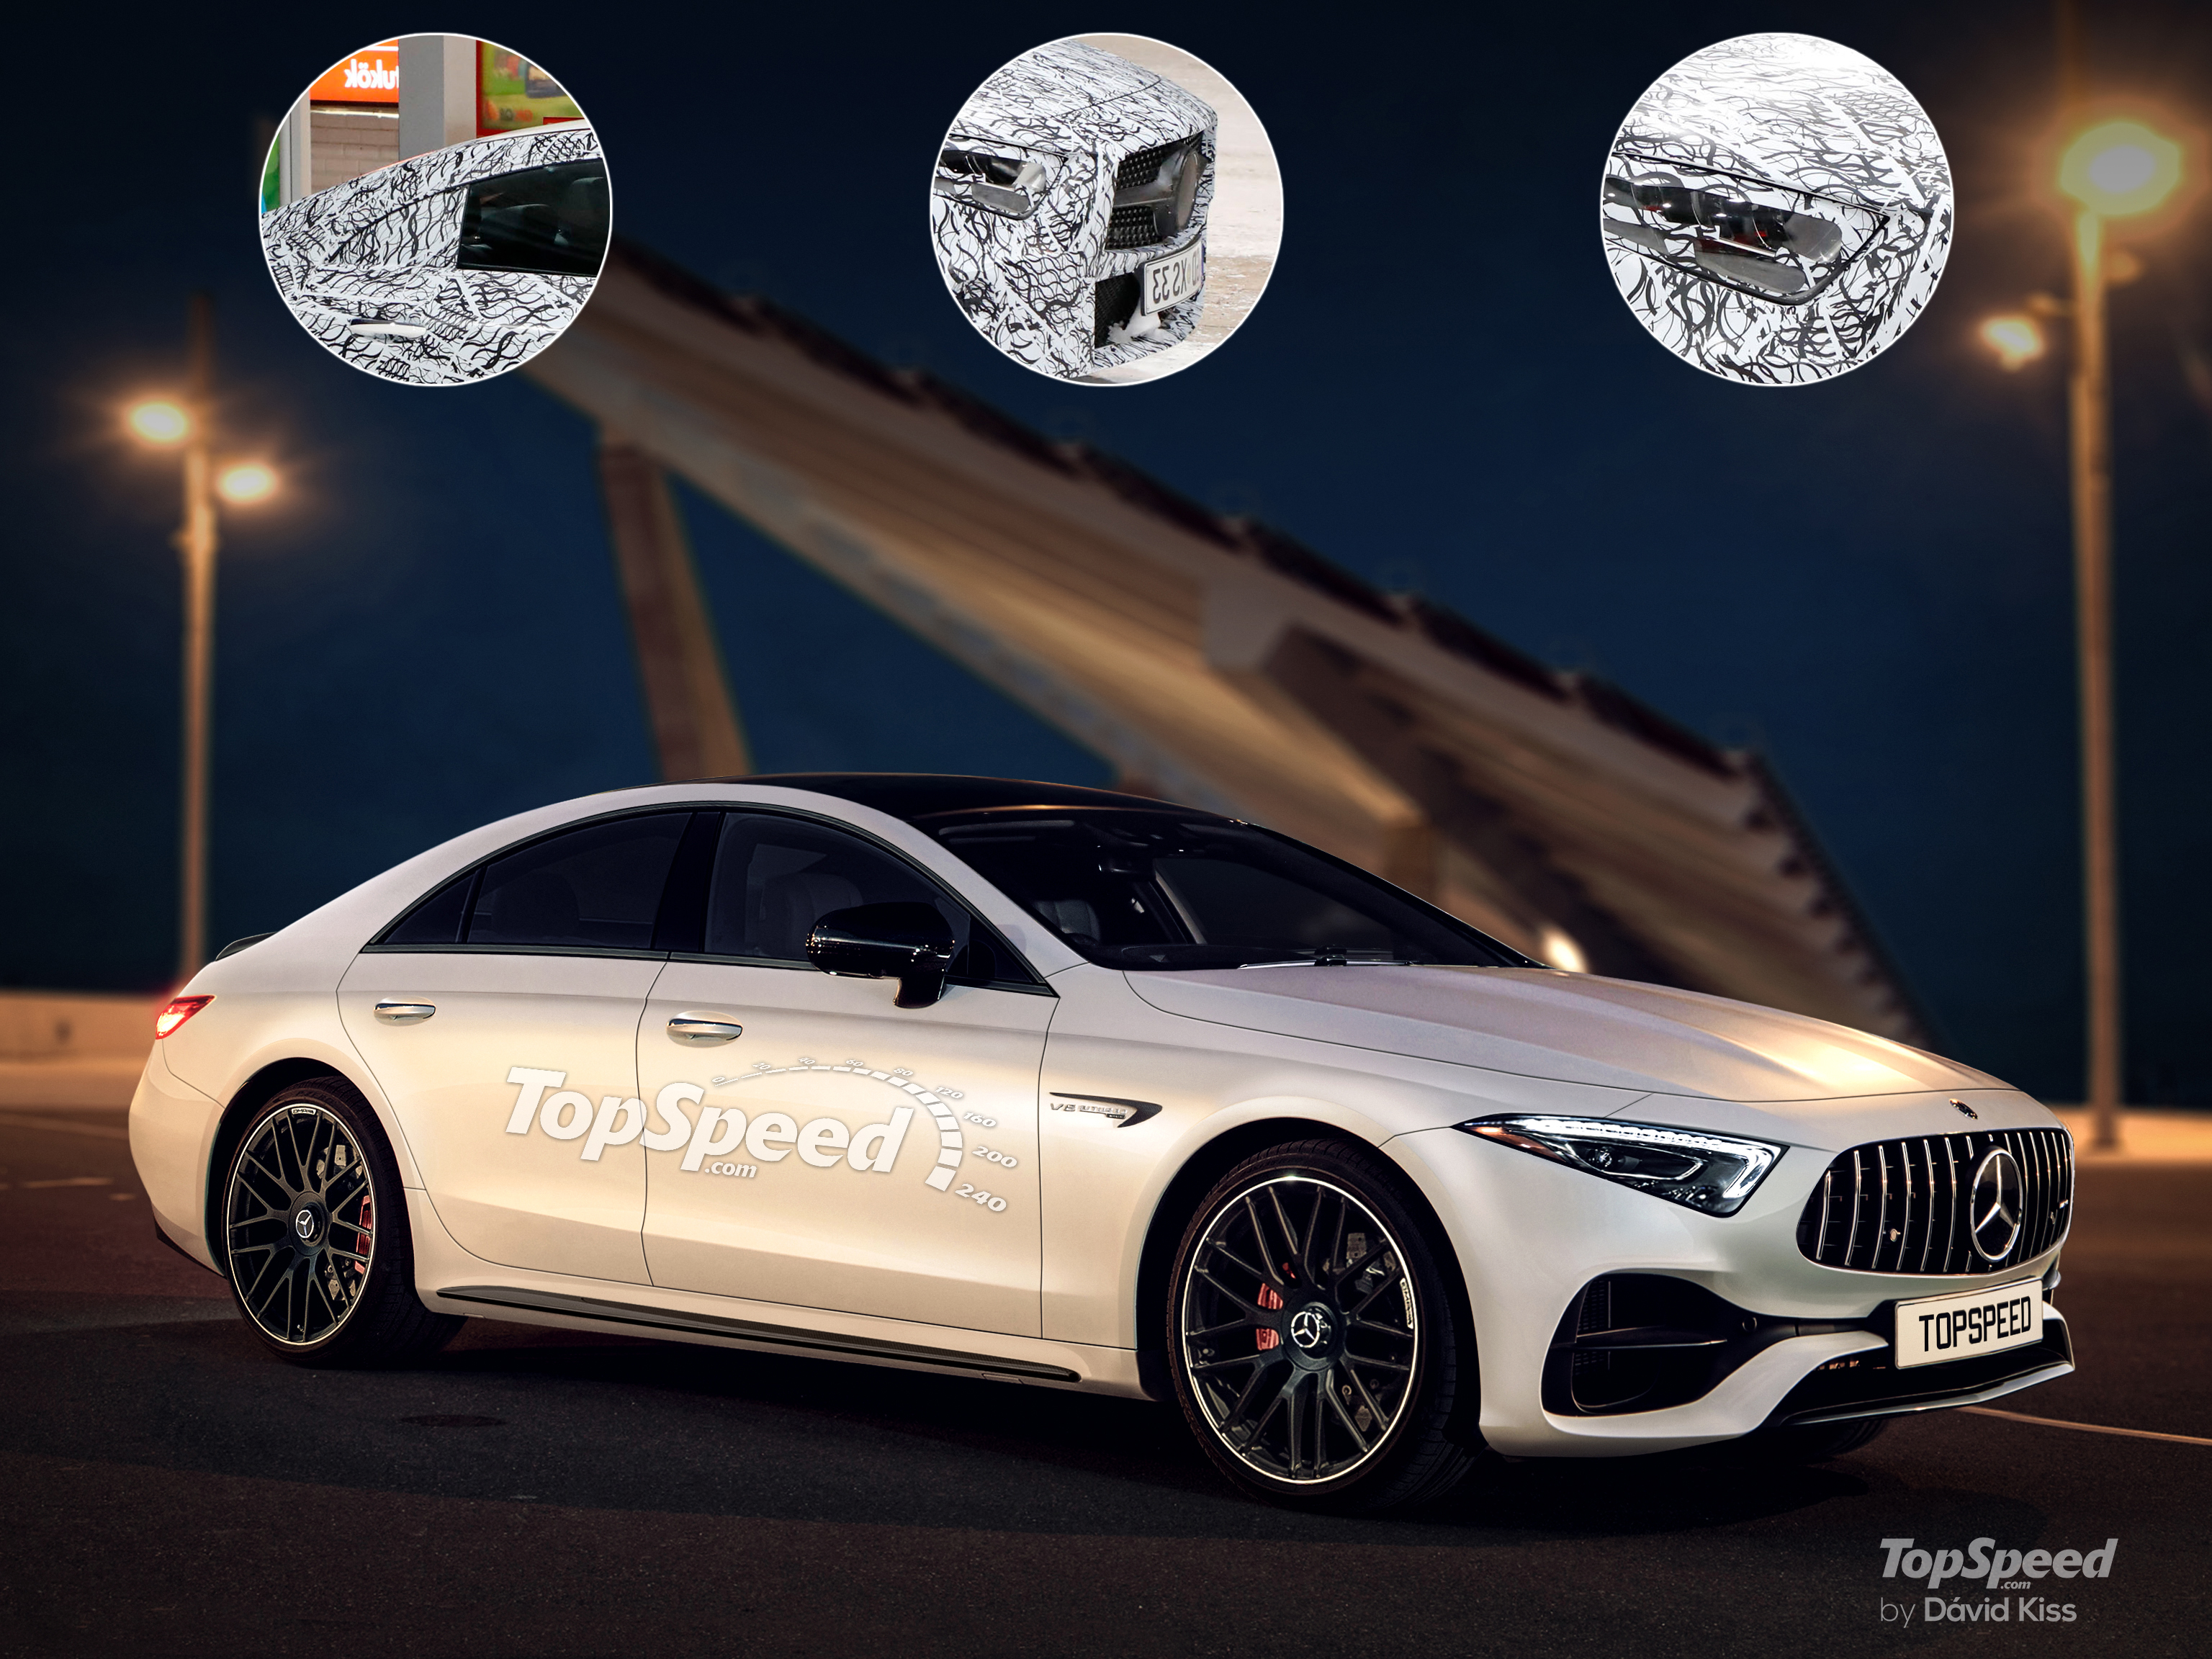 2019 cls550 for sale 2019 Mercedes Benz CLS | Top Speed 2019 cls550 for sale